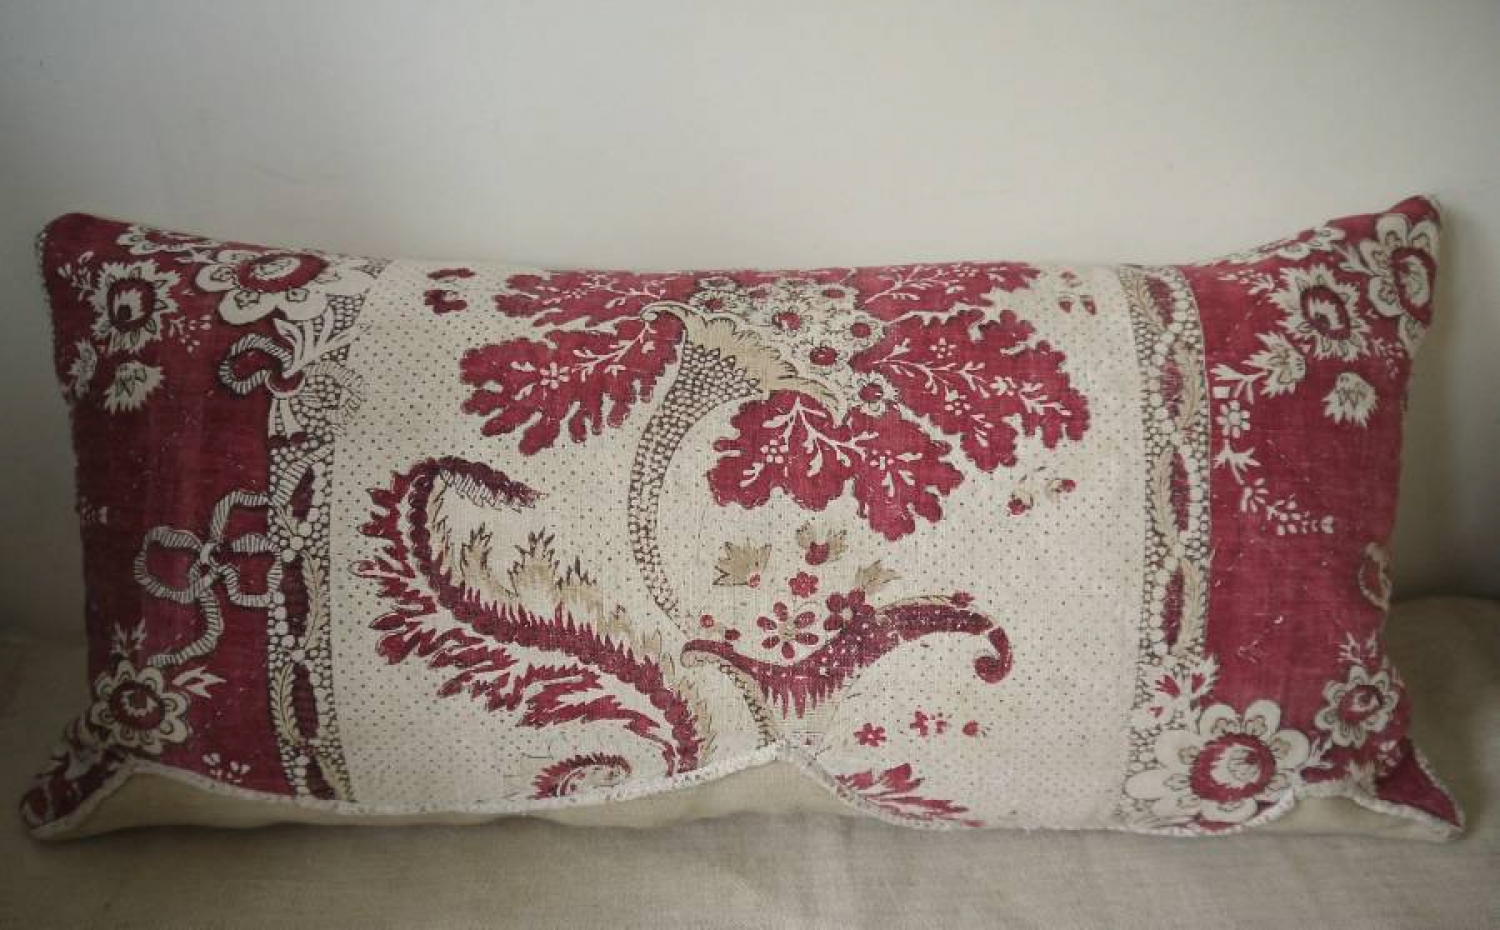 La Cornue Fleurie Cushion